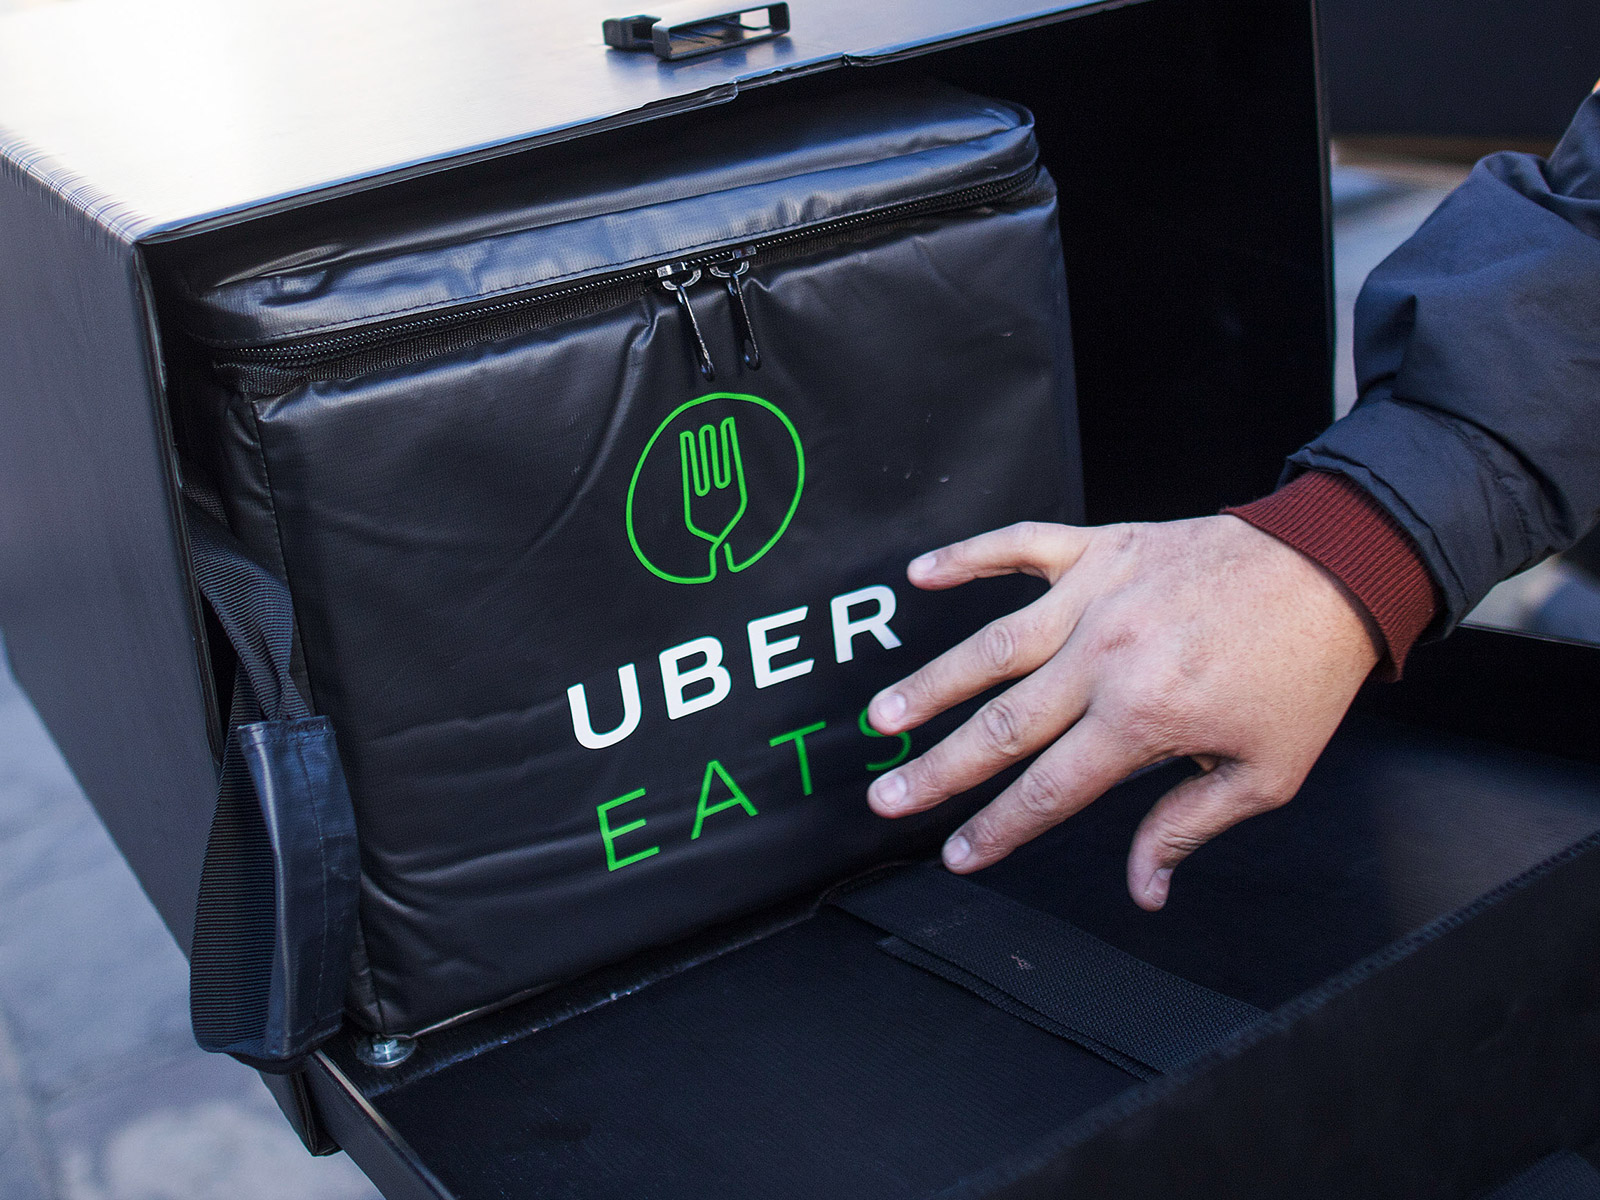 uber eats during snowstorm this year